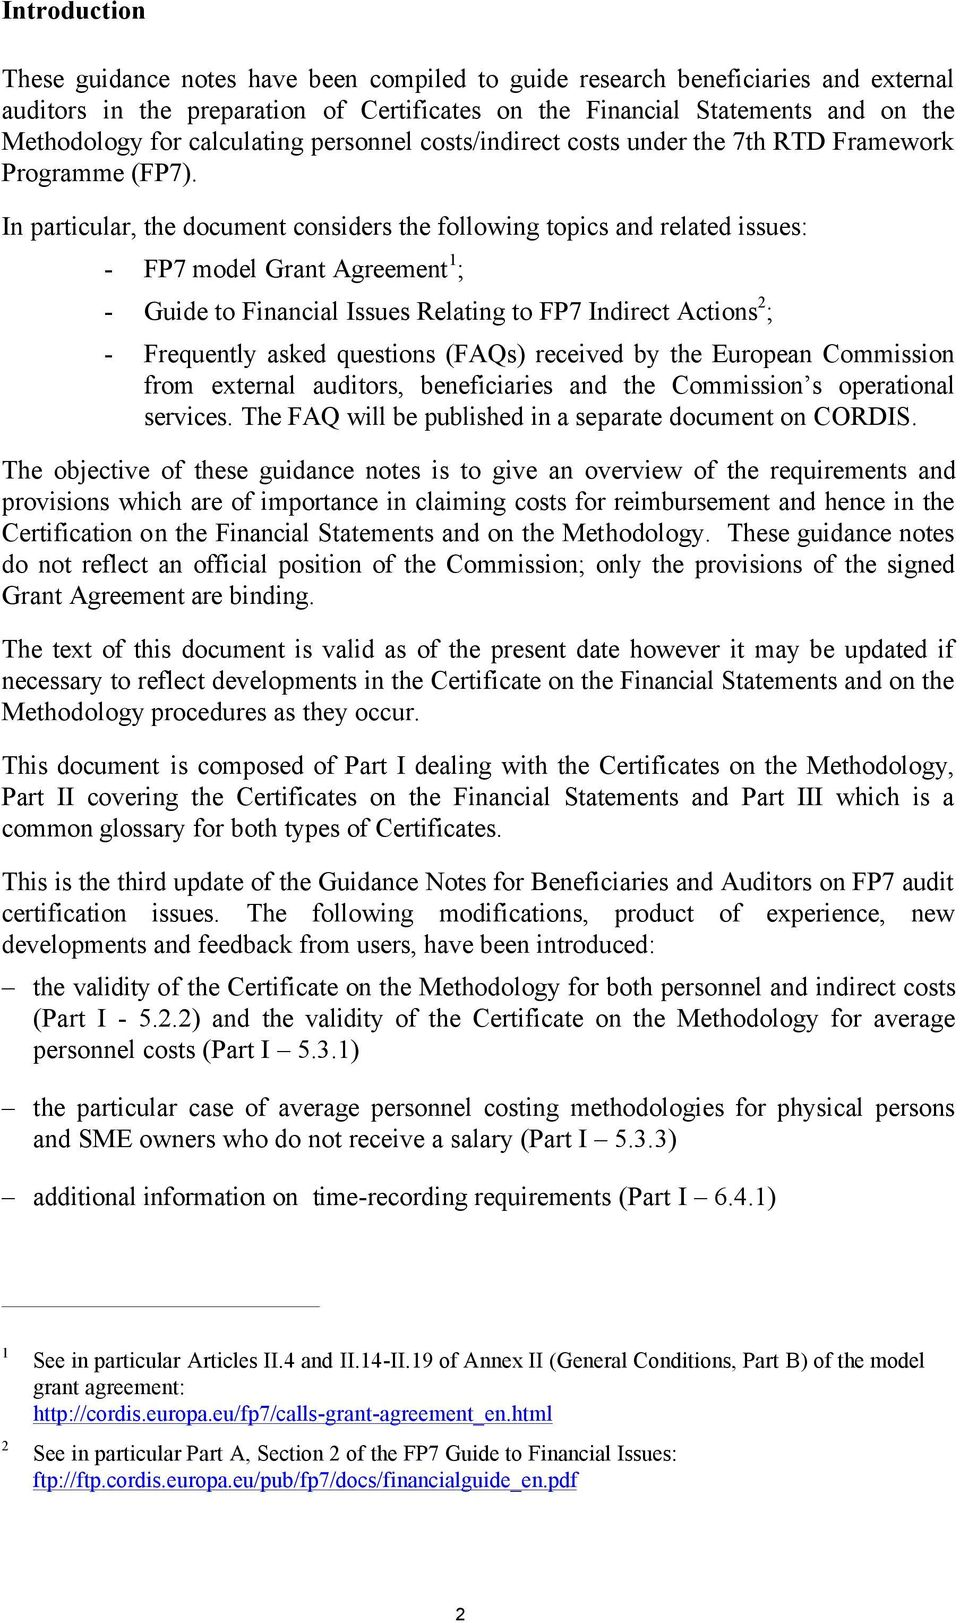 In particular, the document considers the following topics and related issues: - FP7 model Grant Agreement 1 ; - Guide to Financial Issues Relating to FP7 Indirect Actions 2 ; - Frequently asked